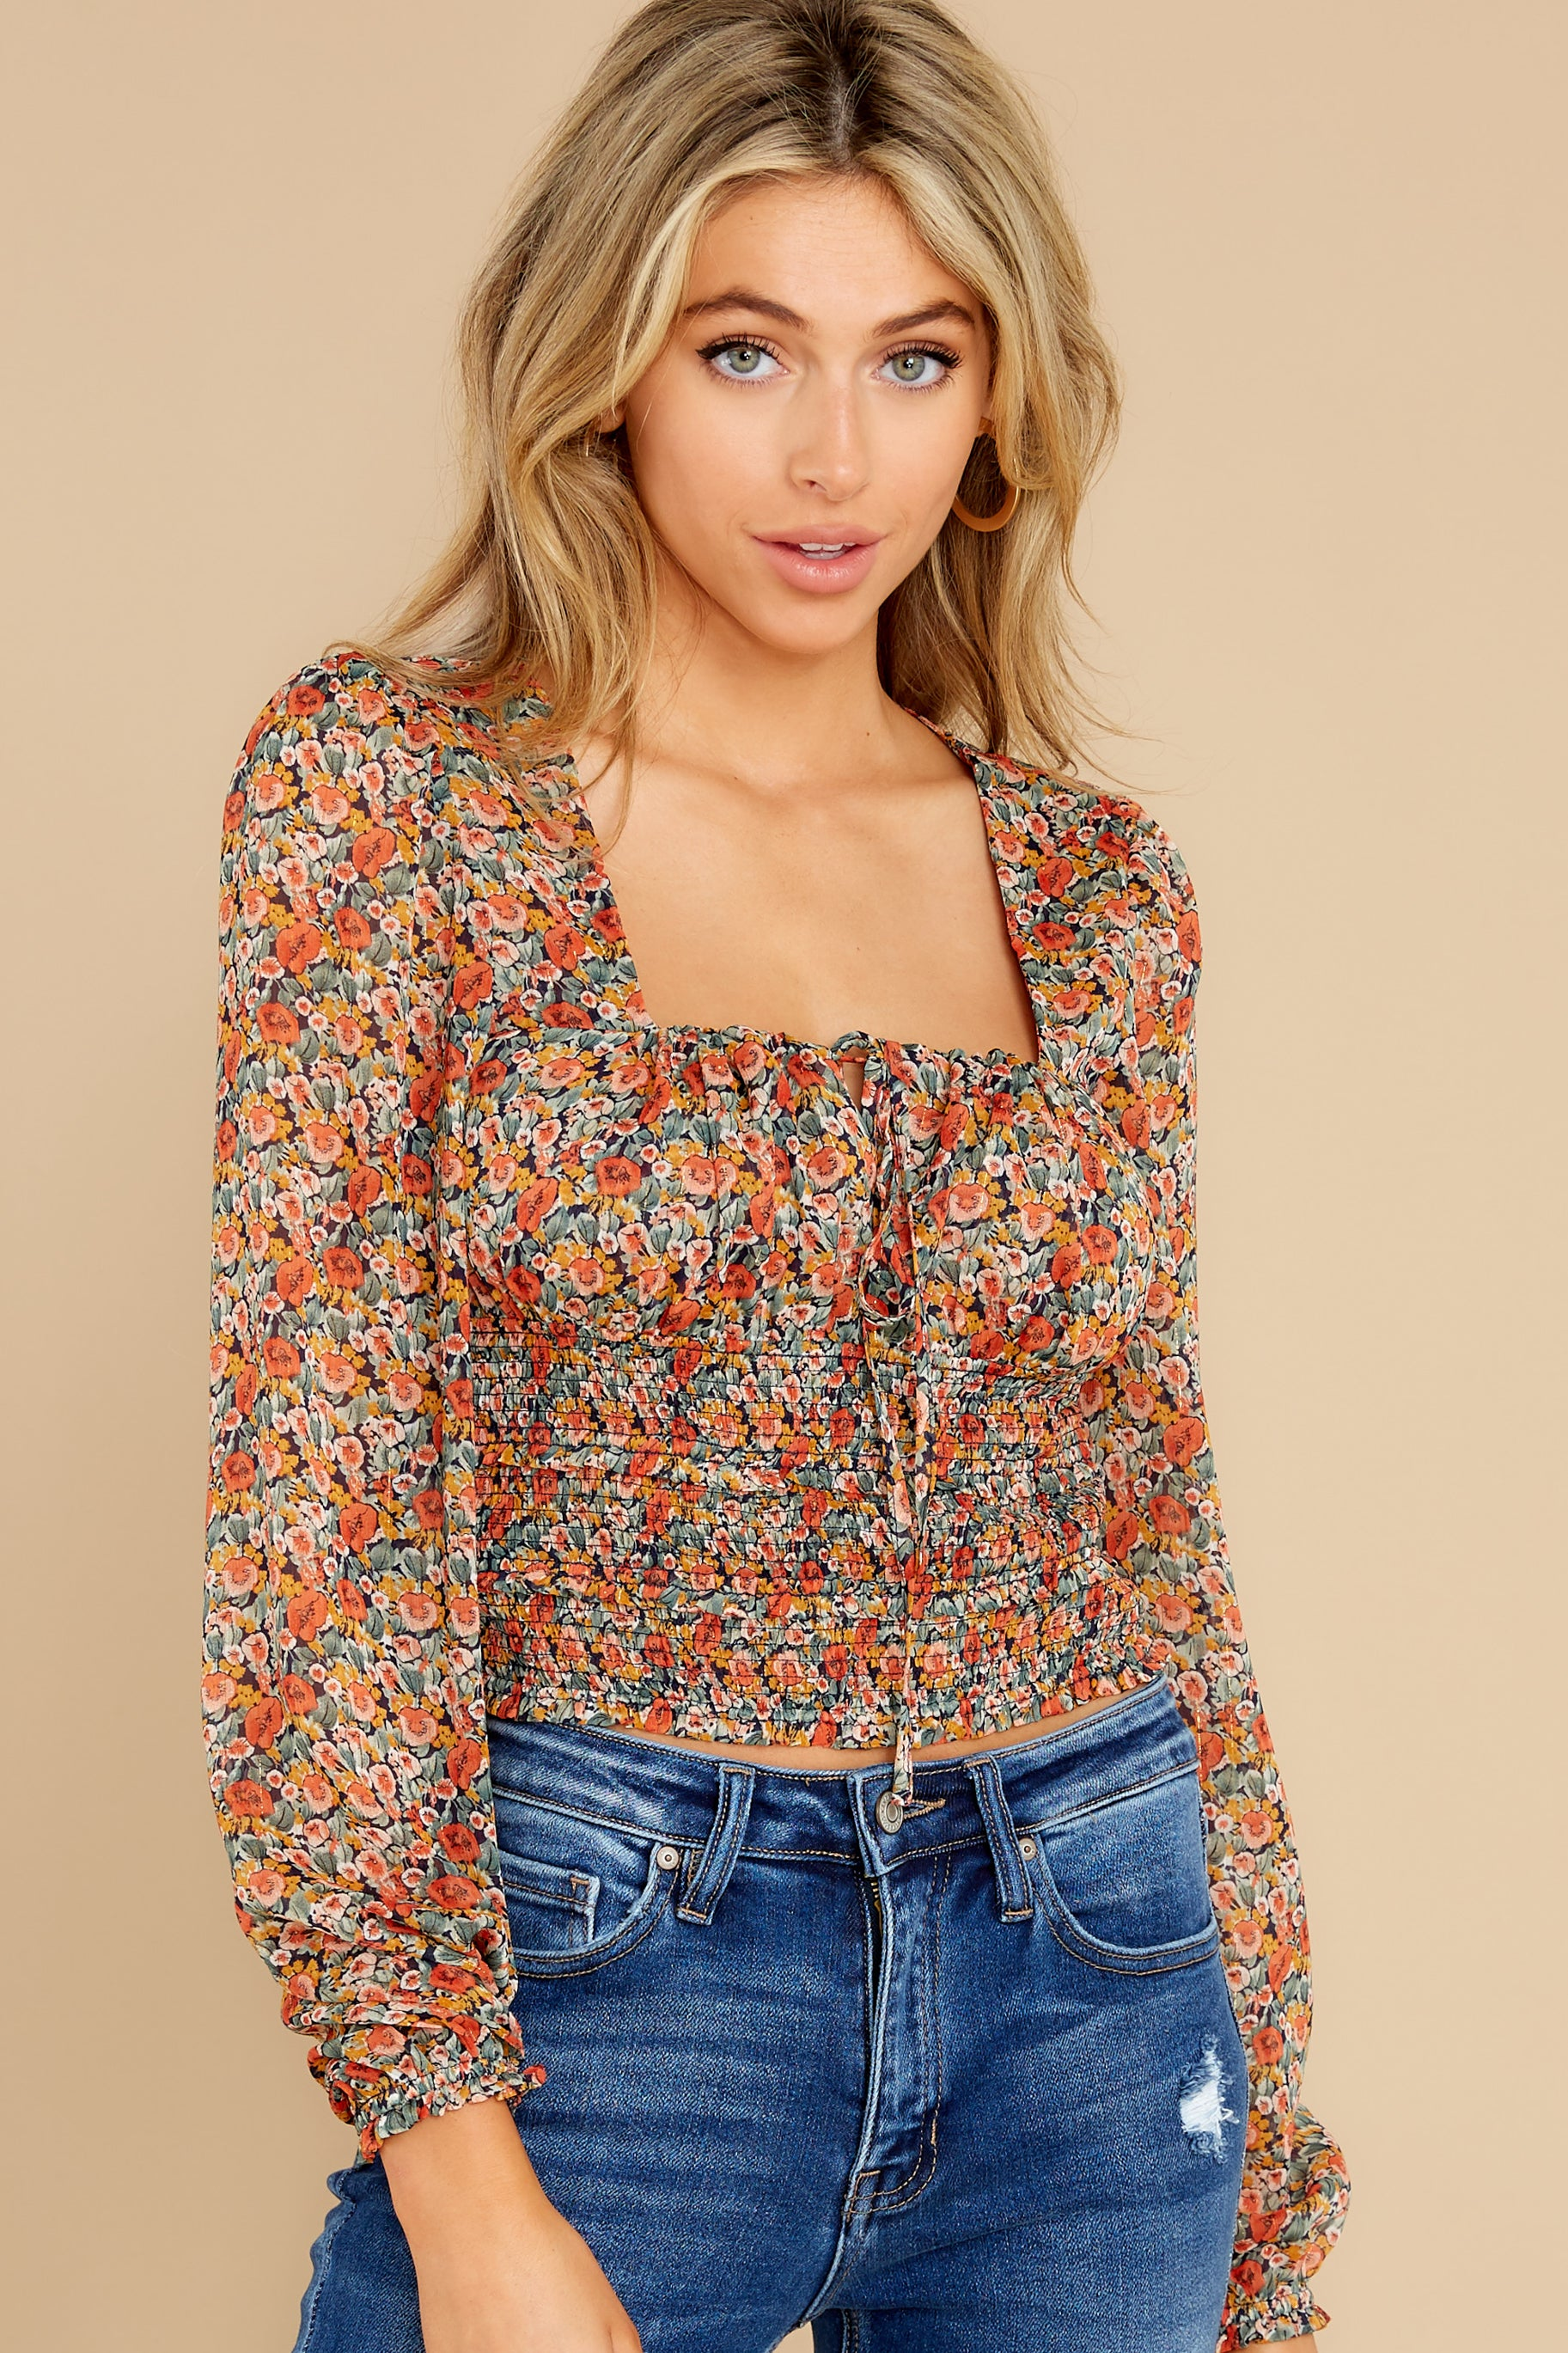 6 Fleetwood Rust Floral Chiffon Top at reddress.com